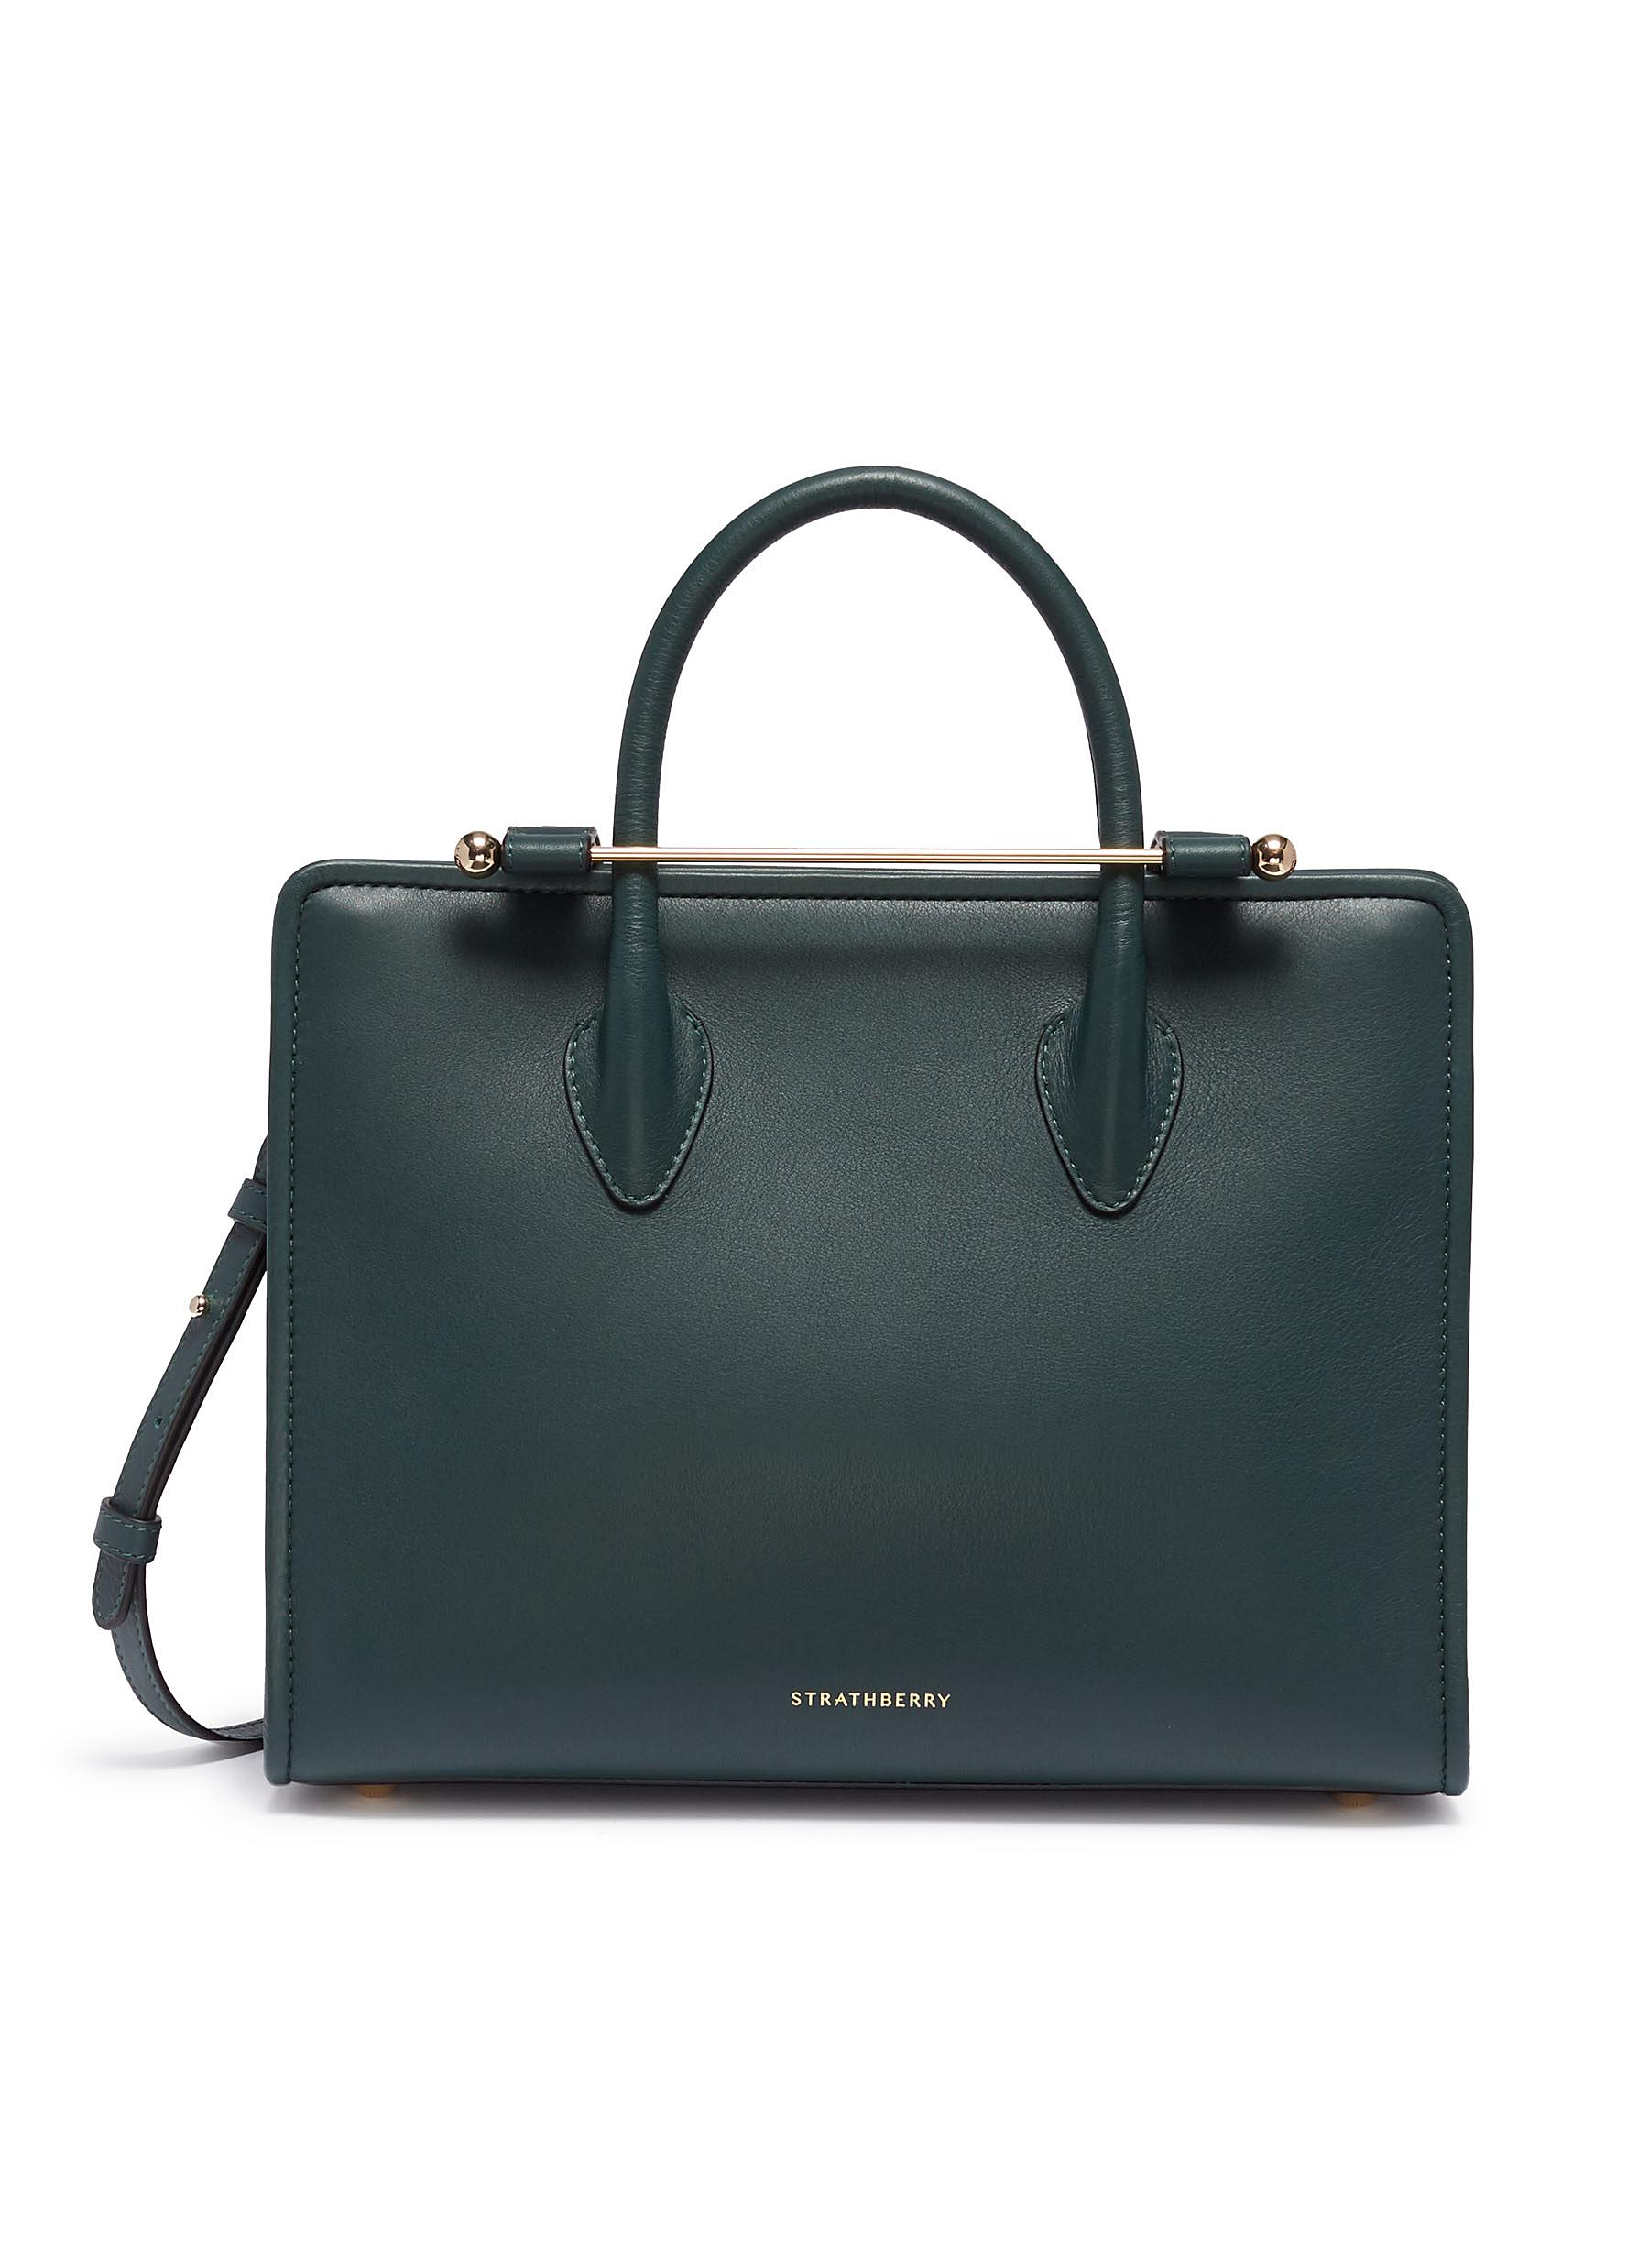 Strathberry Midi Calfskin Leather Convertible Tote In Bottle Green